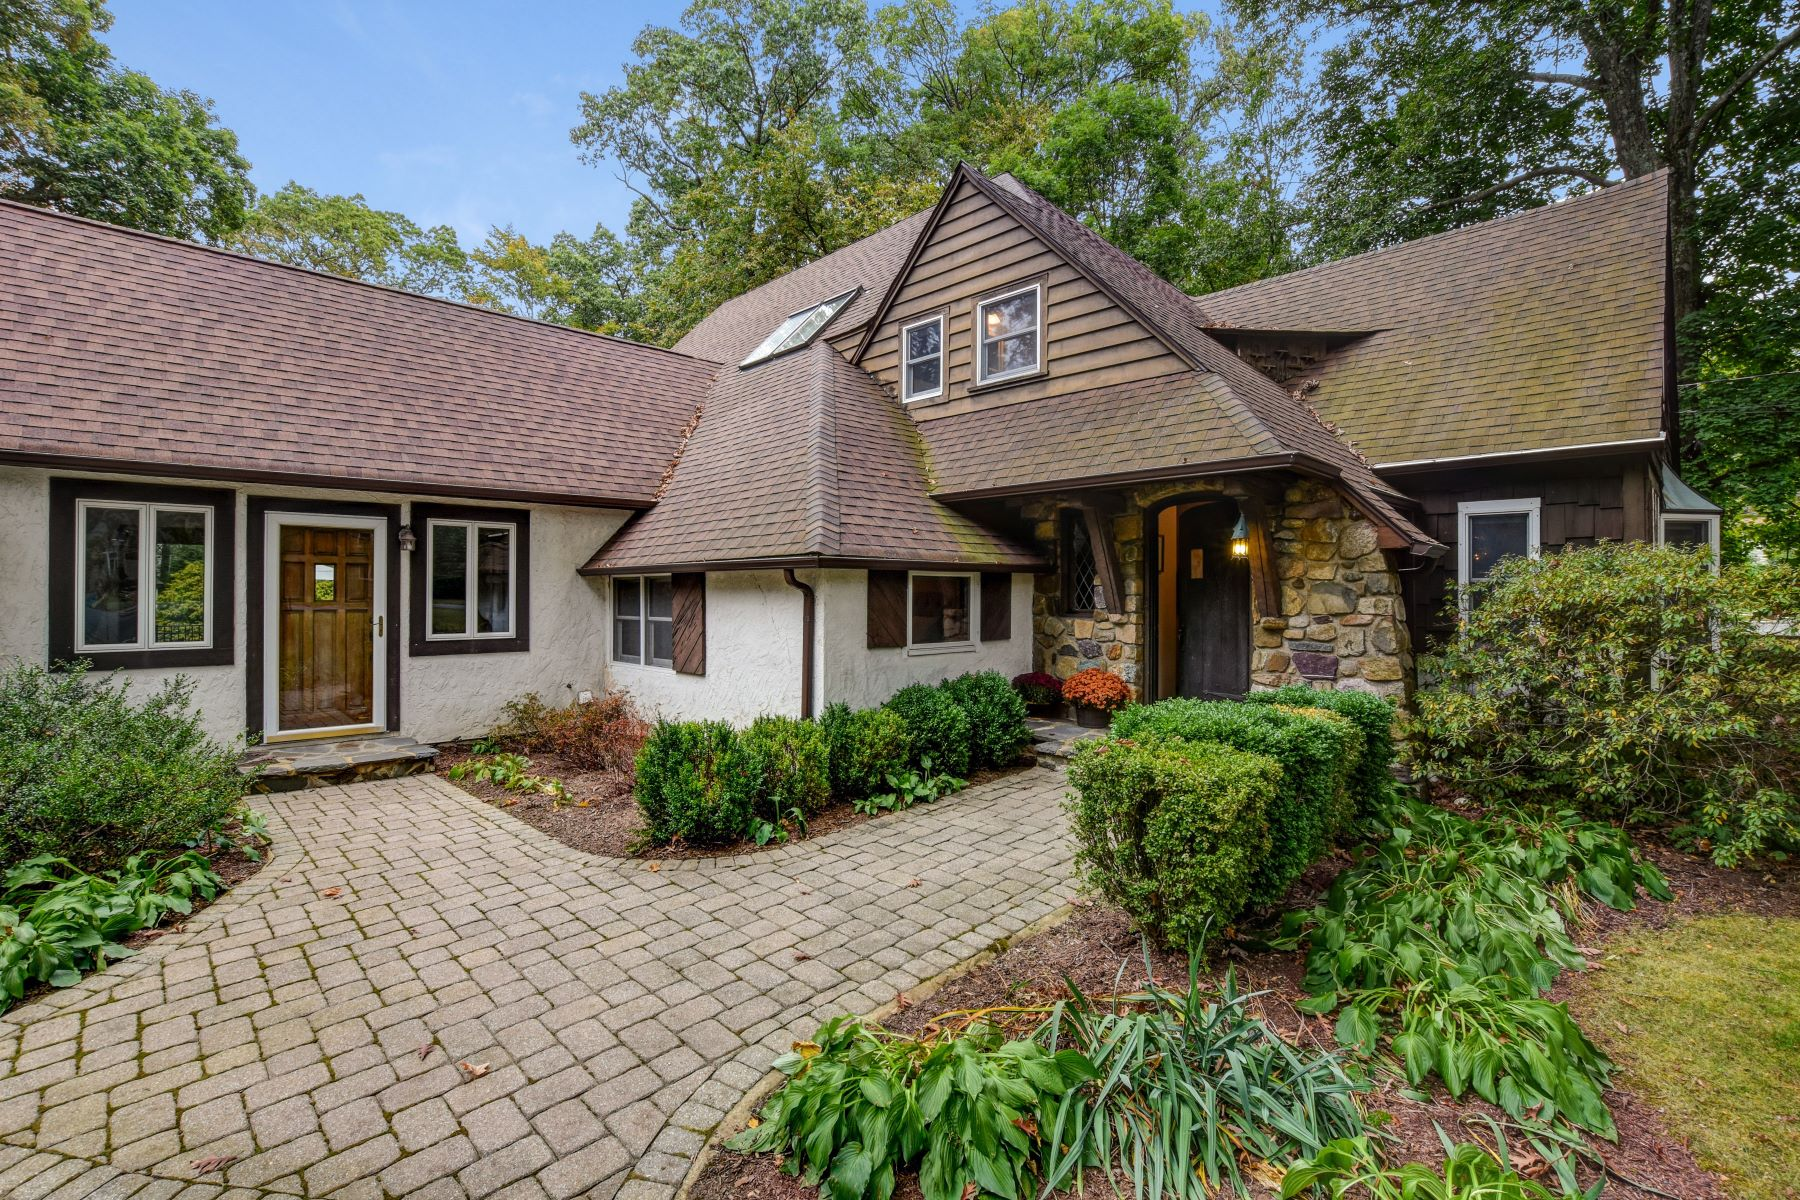 Single Family Homes for Sale at Charming Custom Tudor 24 Old Wood Road Morris Plains, New Jersey 07950 United States